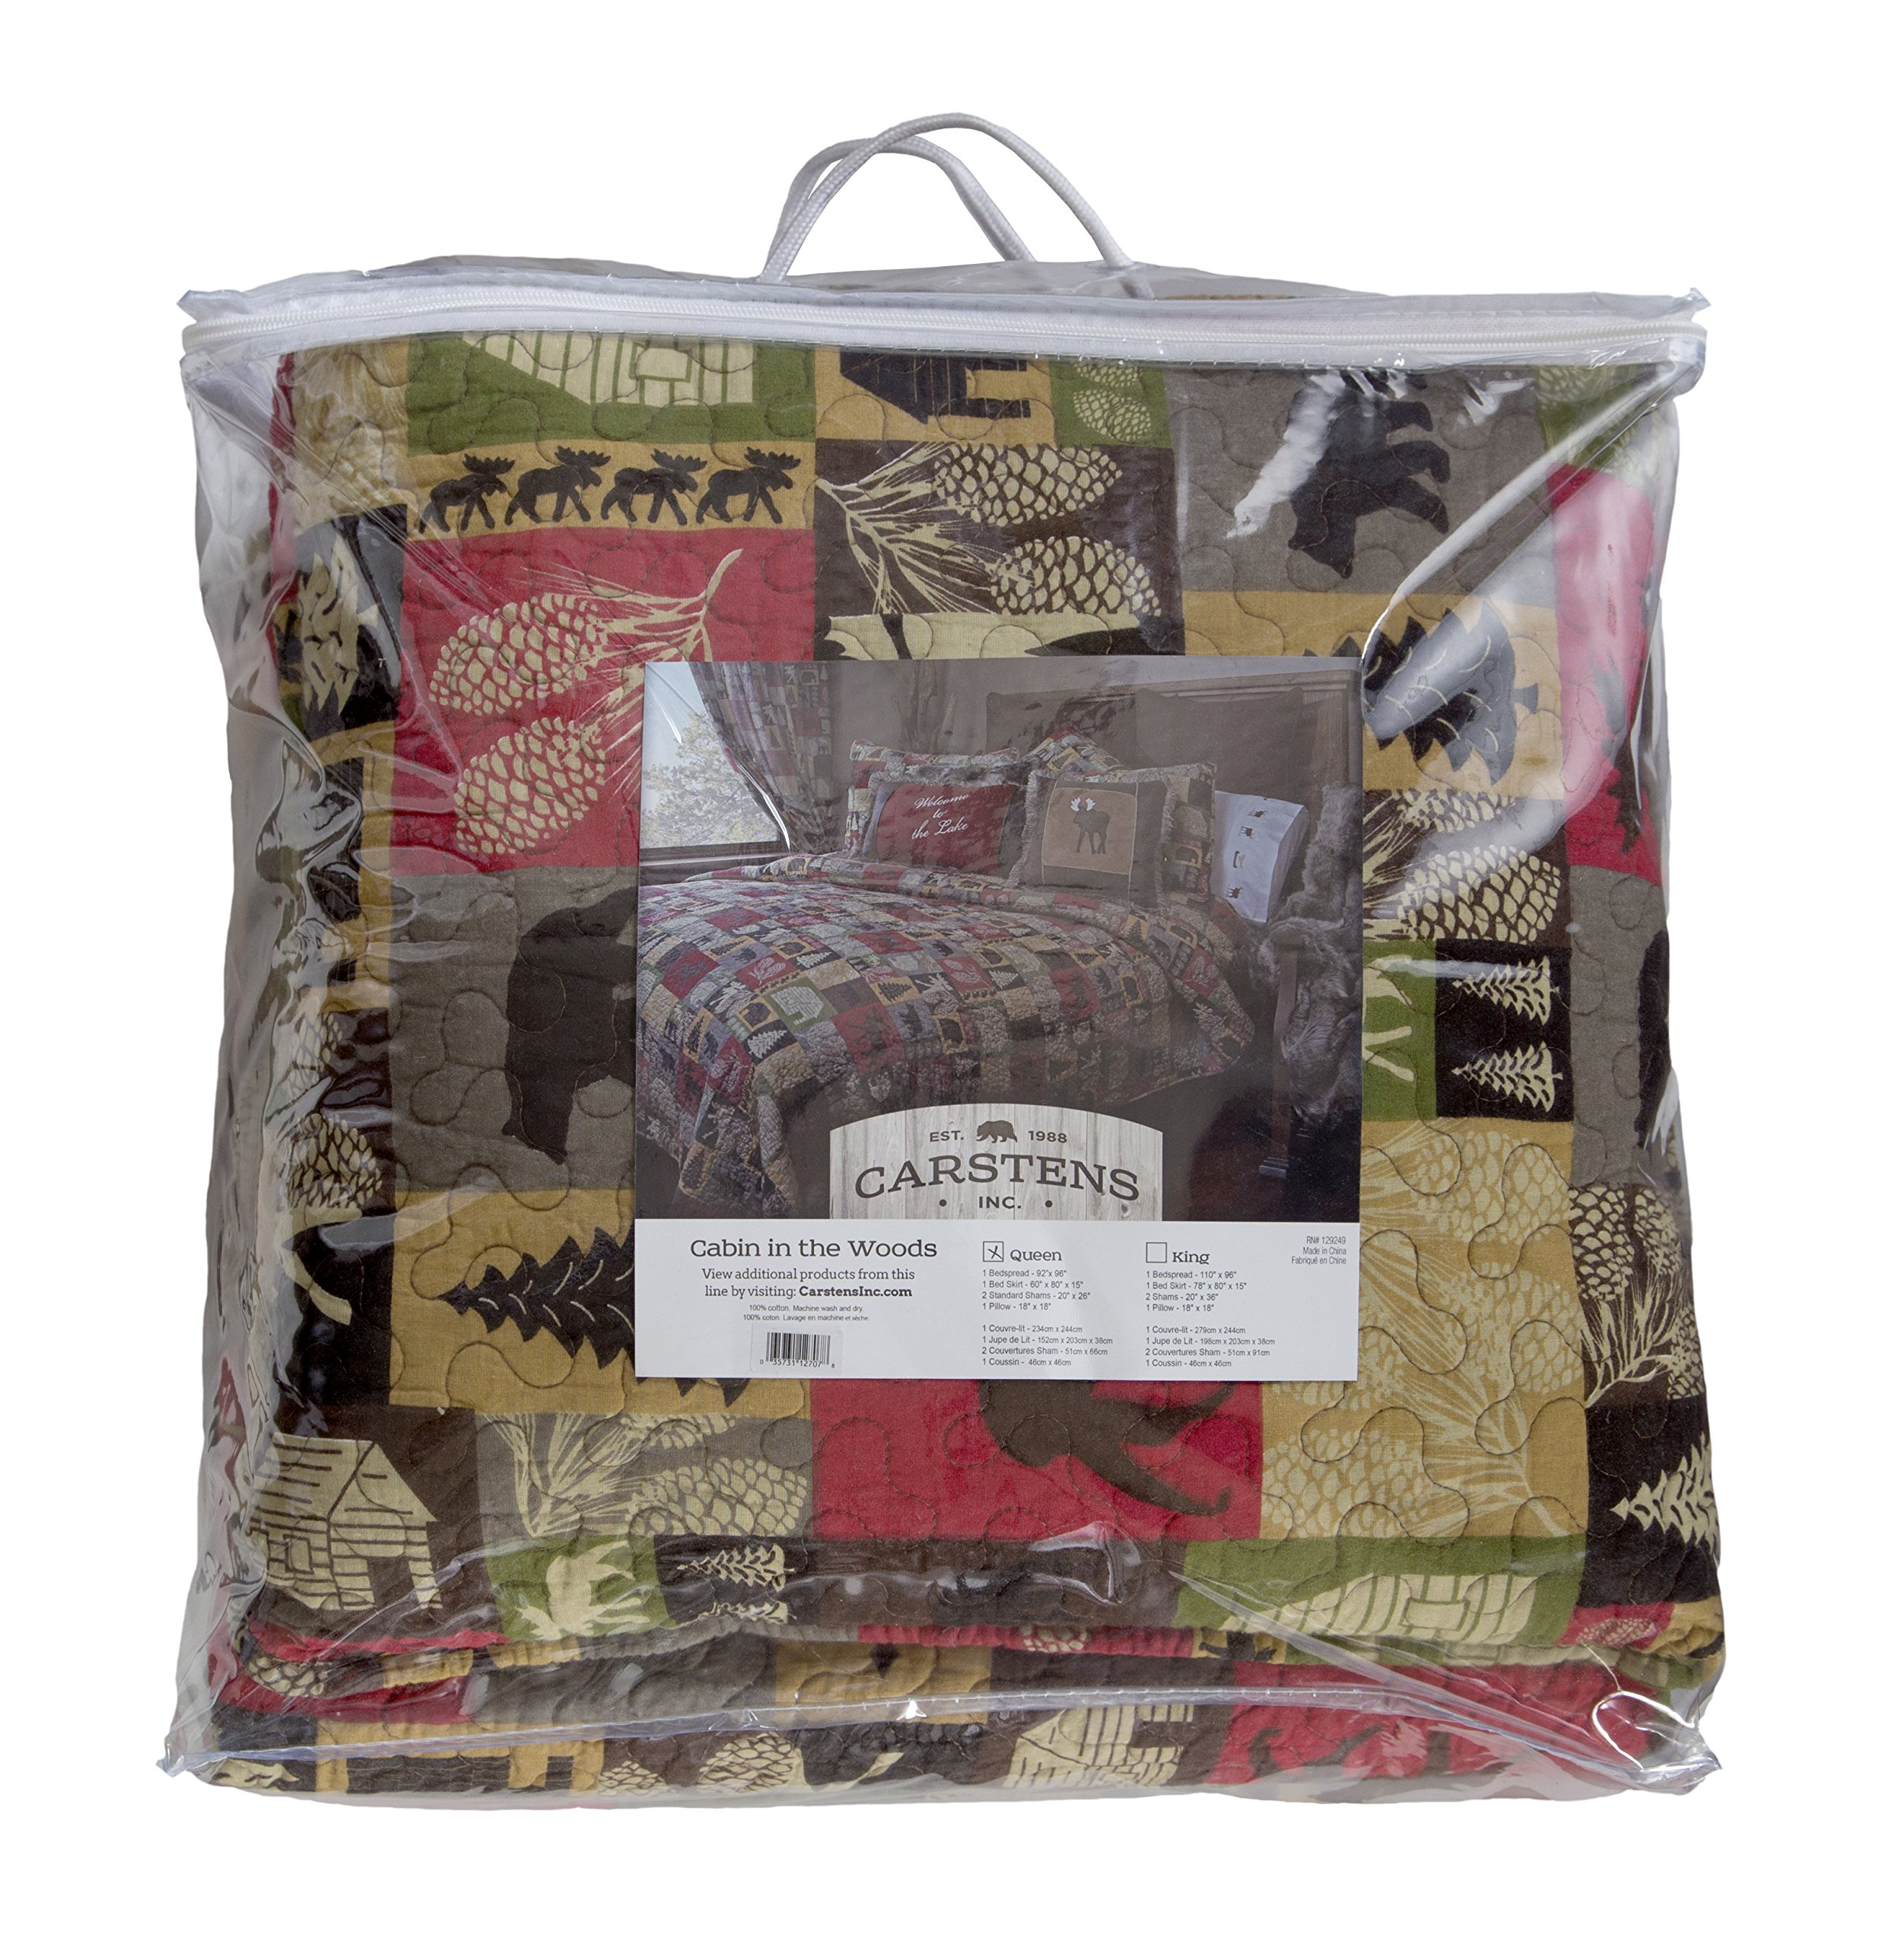 Carstens Cabin in The Woods 5 Piece Cotton Printed Quilt Bedding Set, Queen by Carstens (Image #8)